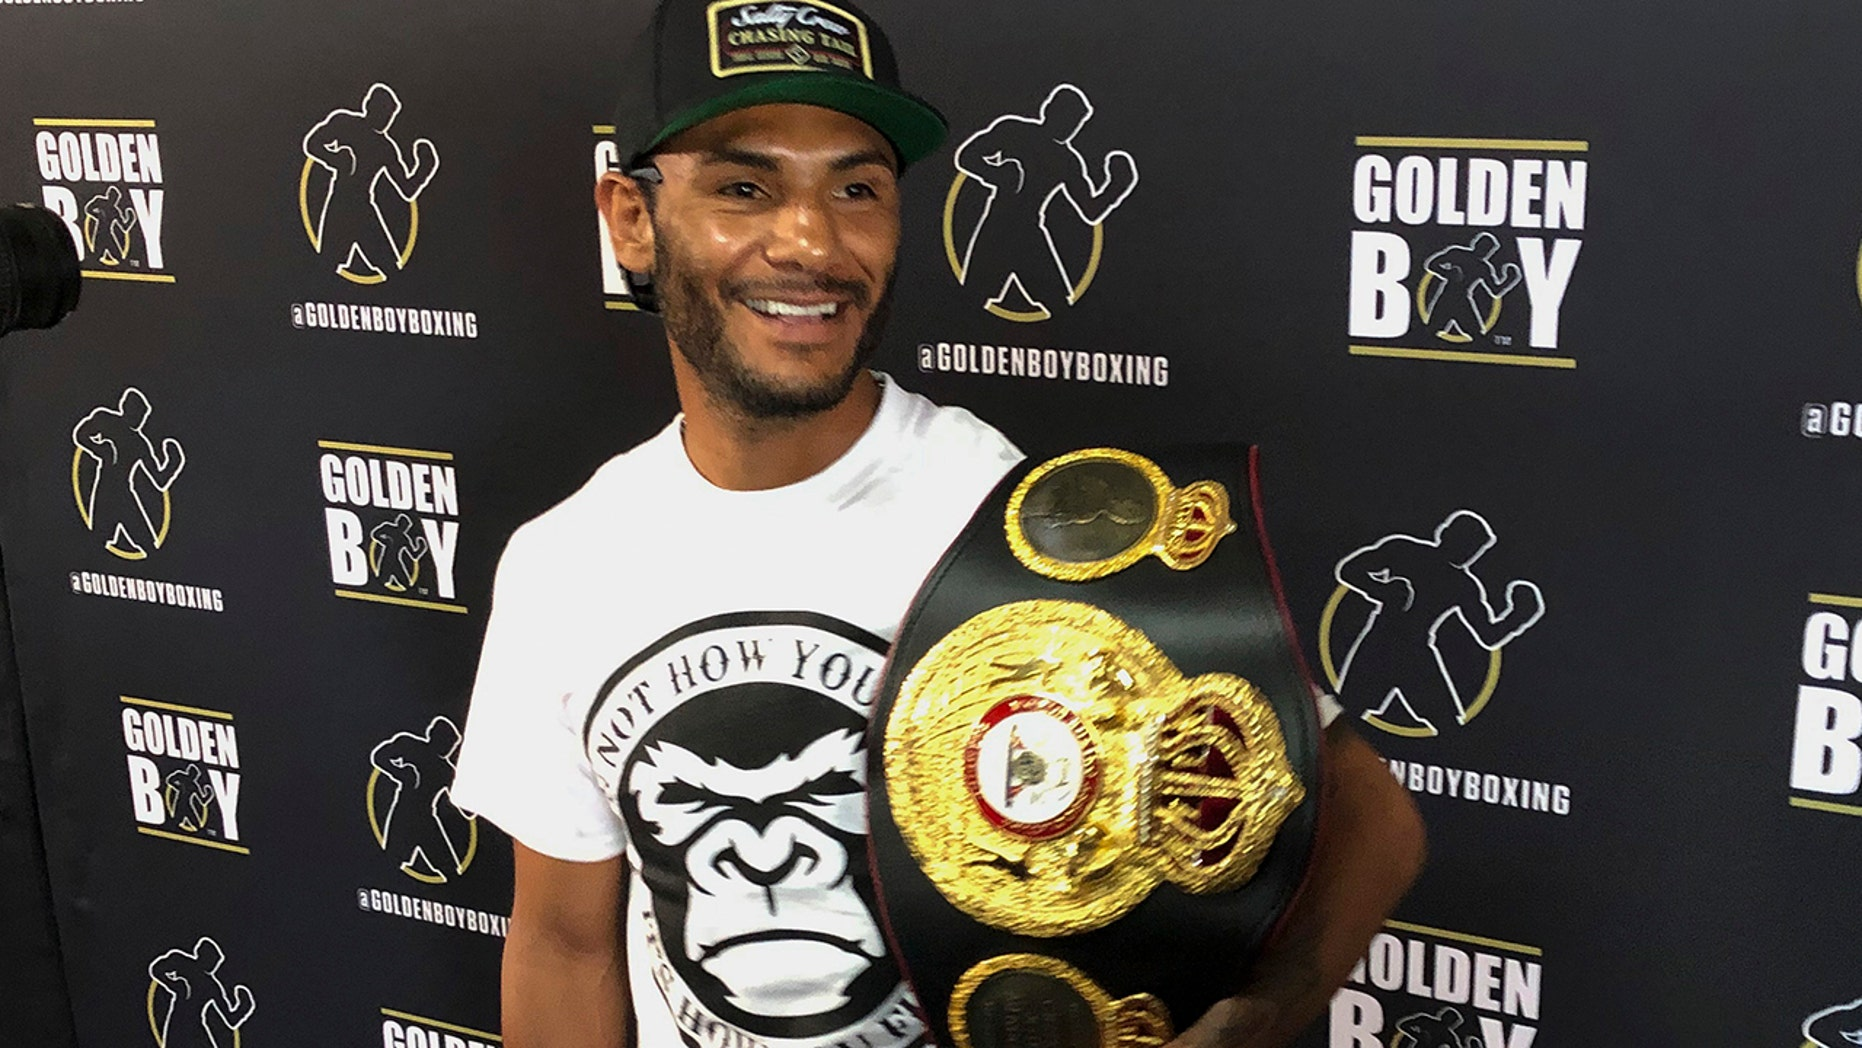 In this Tuesday, June 18, 2019 photo, WBA super featherweight champion Andrew Cancio speaks to reporters at the Westside Boxing Club in Los Angeles. Cancio is a boxing champion who also works for the Southern California Gas Company, and he plans to keep his day job even after his lucrative rematch with Alberto Machado in Indio, Calif. (AP Photo/Greg Beacham)